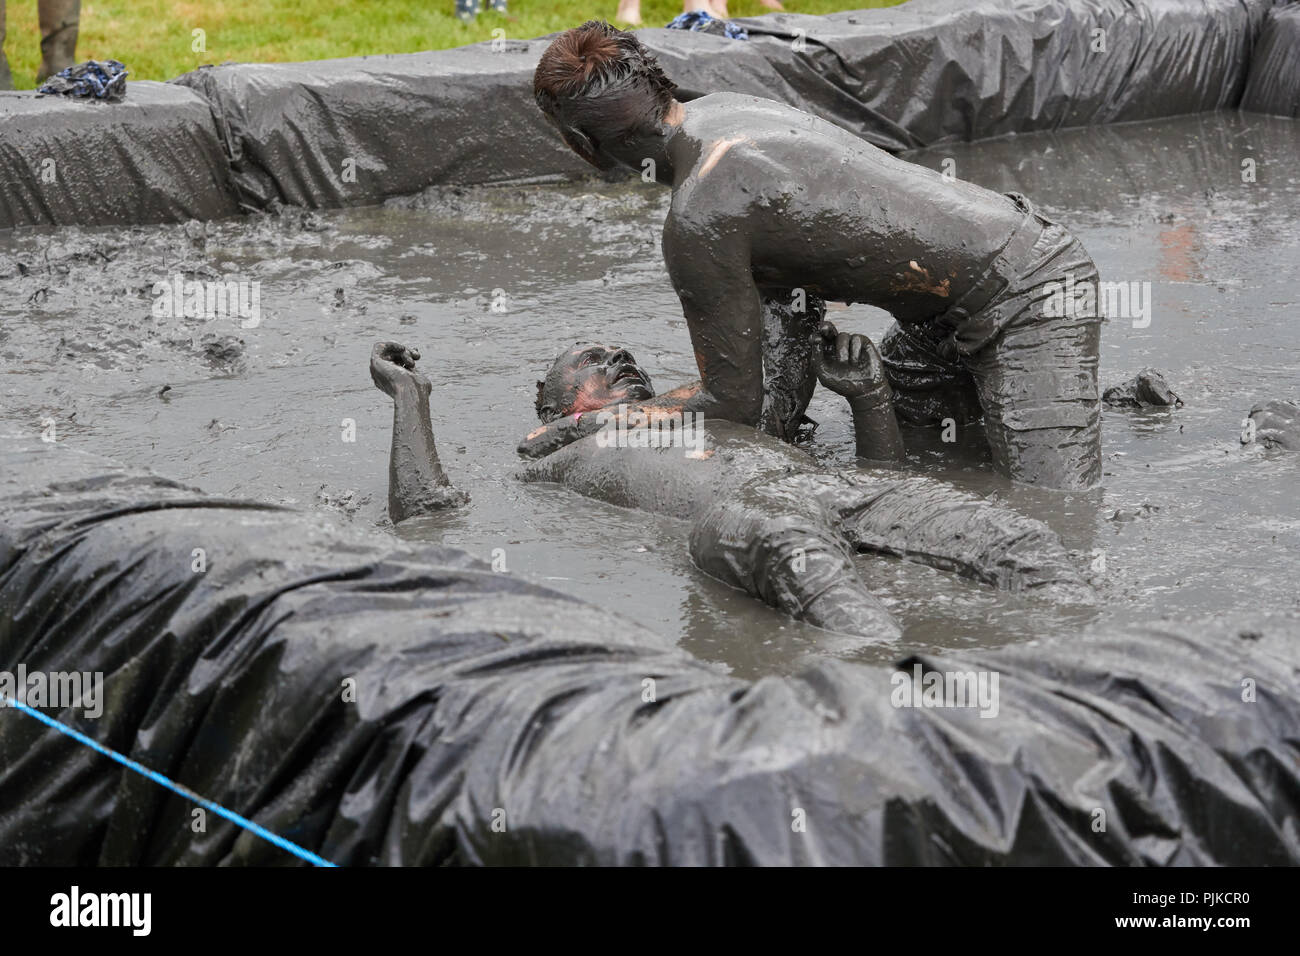 Amature mud fights